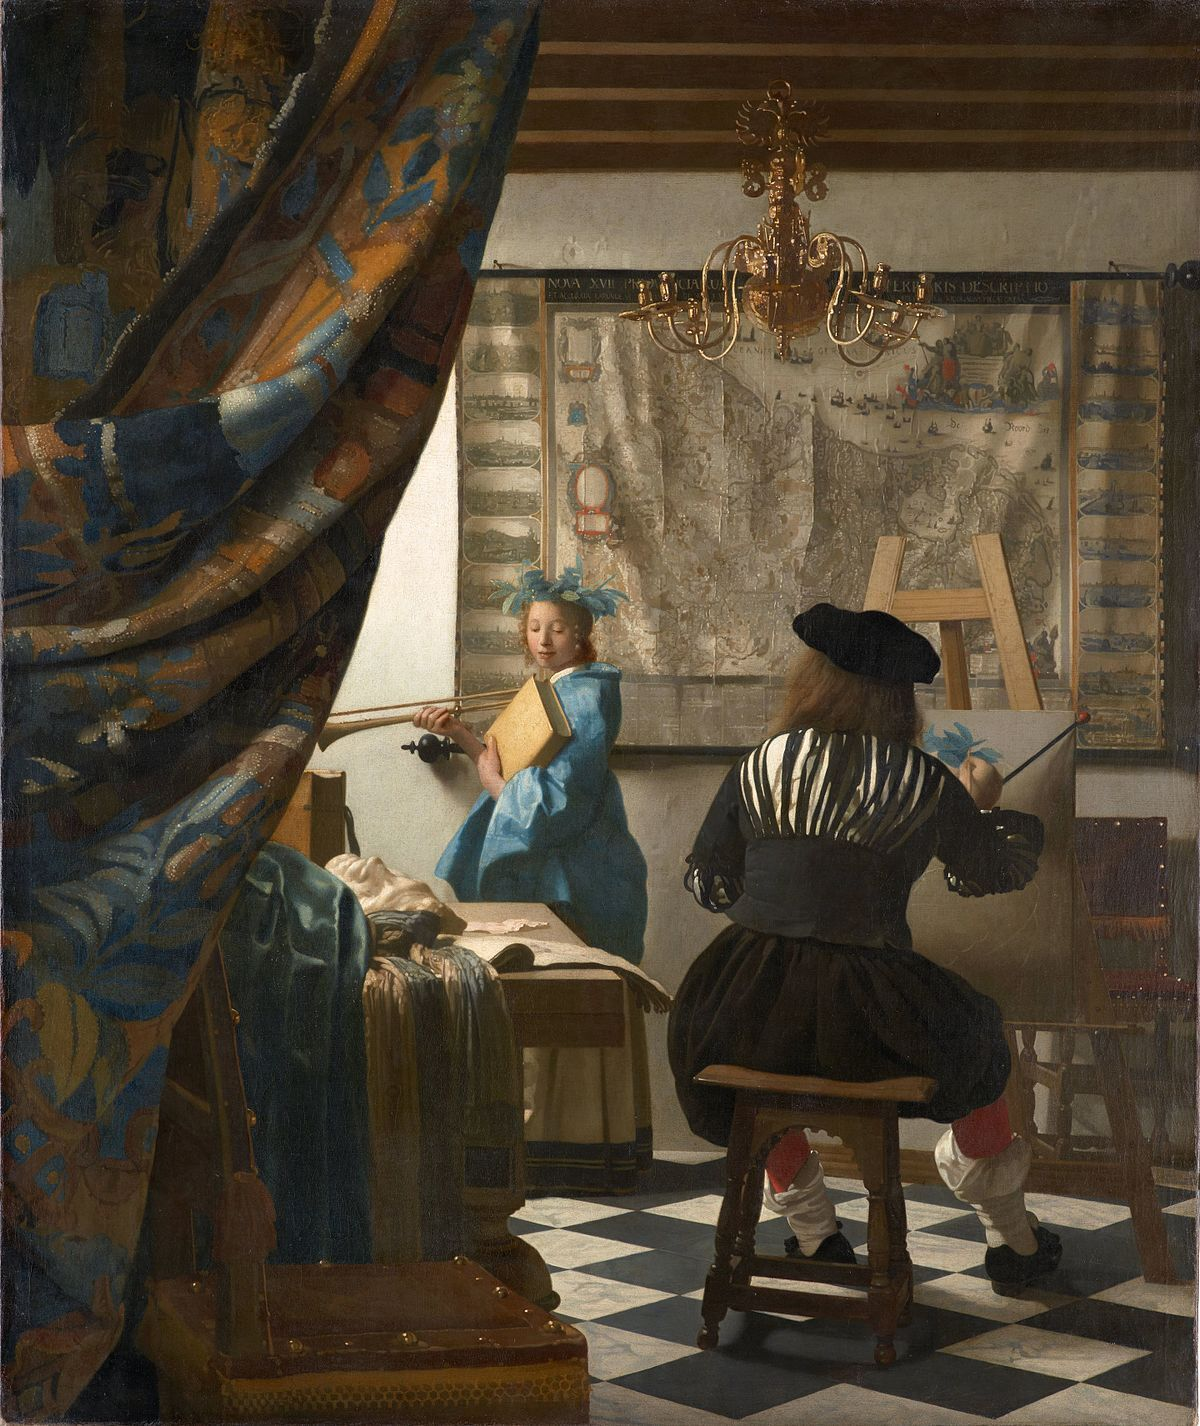 Jan Vermeer, The Art of Painting, 1666–1668. Collection of the Kunsthistoriches Museum, Vienna. Image via Wikimedia Commons.